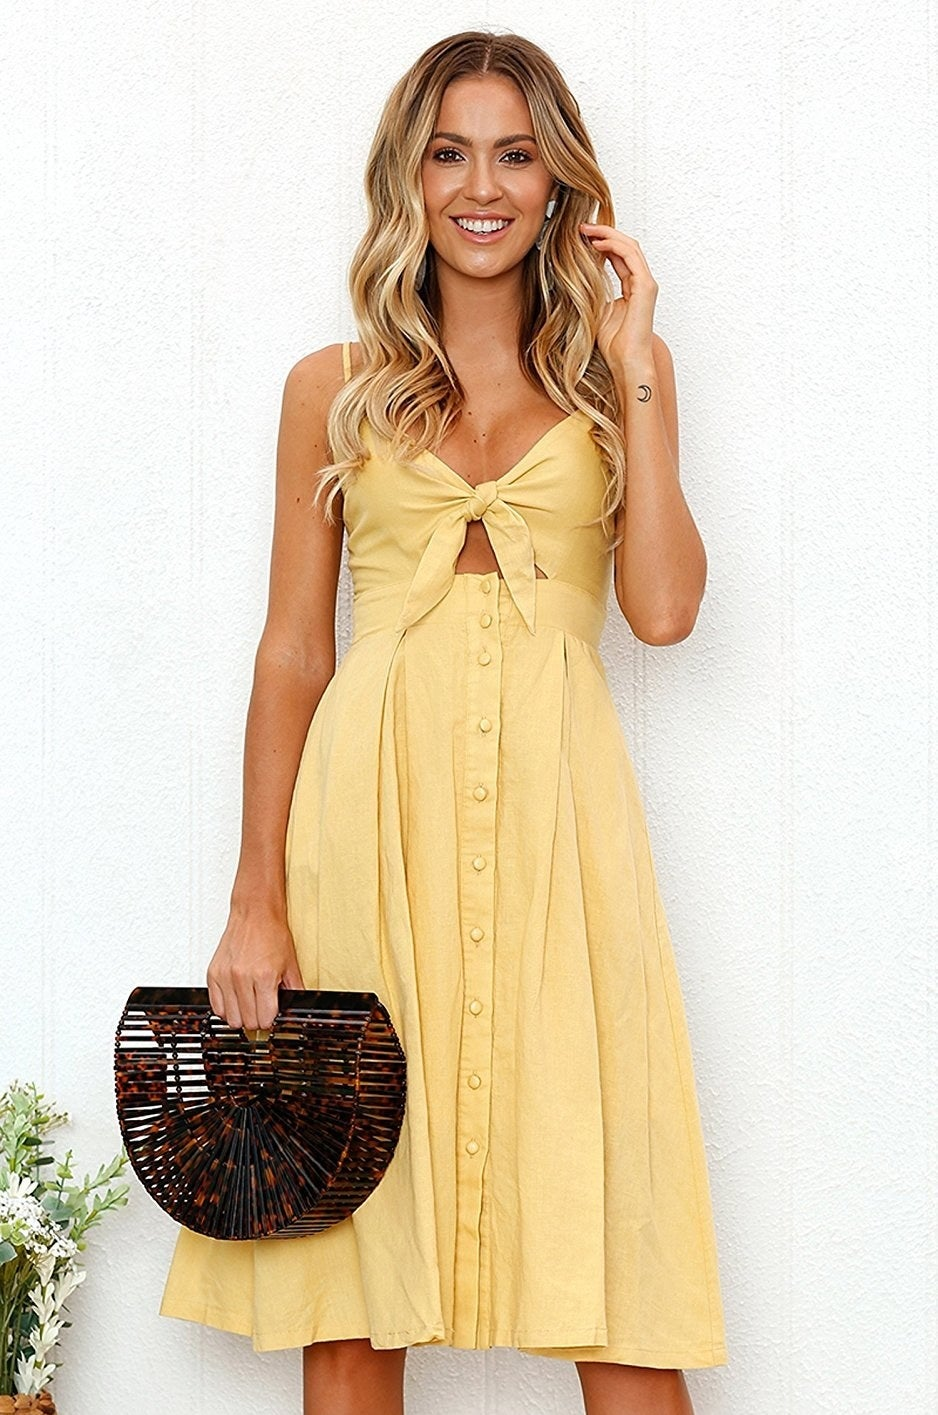 """Promising review: """"I really love this dress. It's super cute for a nice summer day, stroll in the city, or a bridal shower–type dress. It's very fun and flirty but classy at the same time. I love the top piece and how you tie it. It's super adorable; I highly recommend it!"""" —Dena HGet it from Amazon for $6.99+ (available in sizes S-XL and in 14 colors)."""